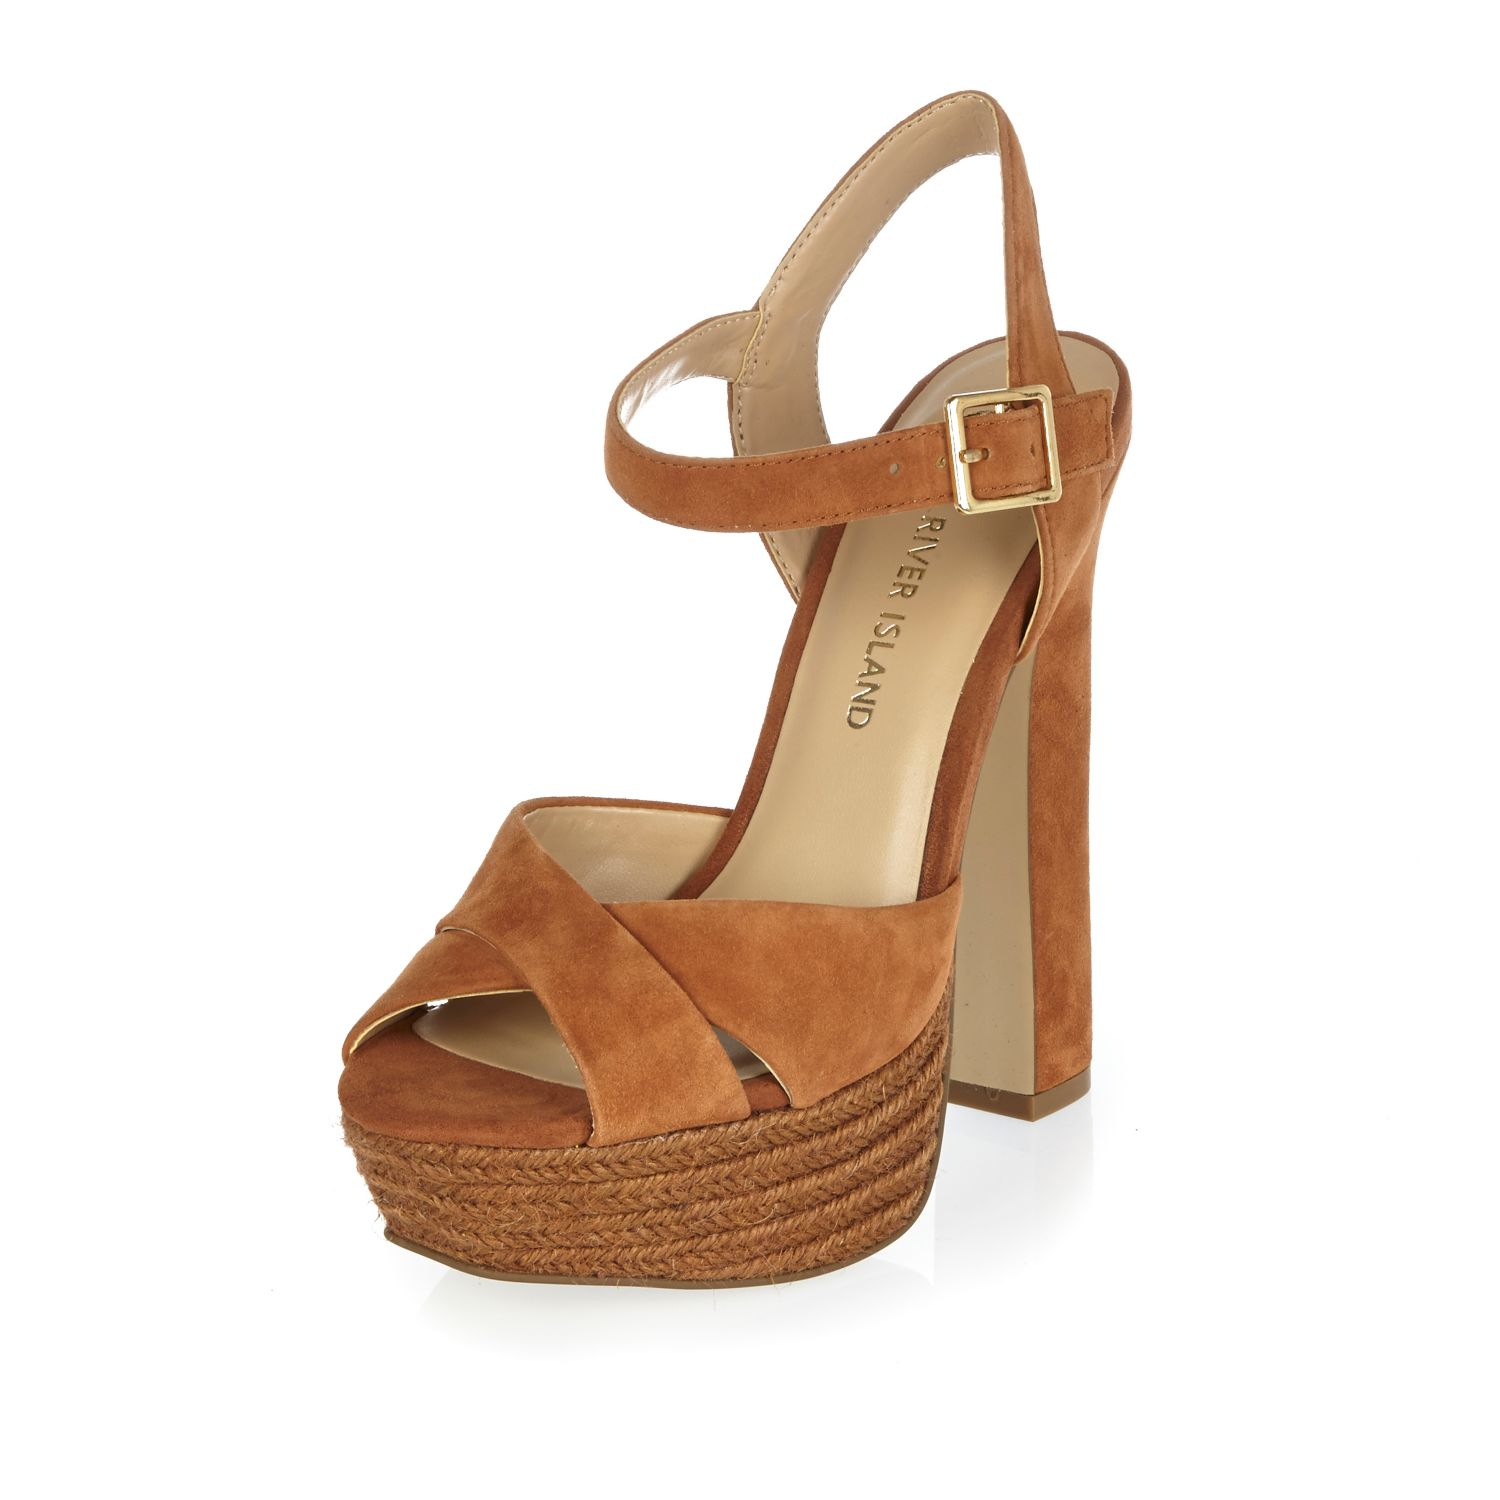 River Island High heels - brown 4mHGHHdtOM